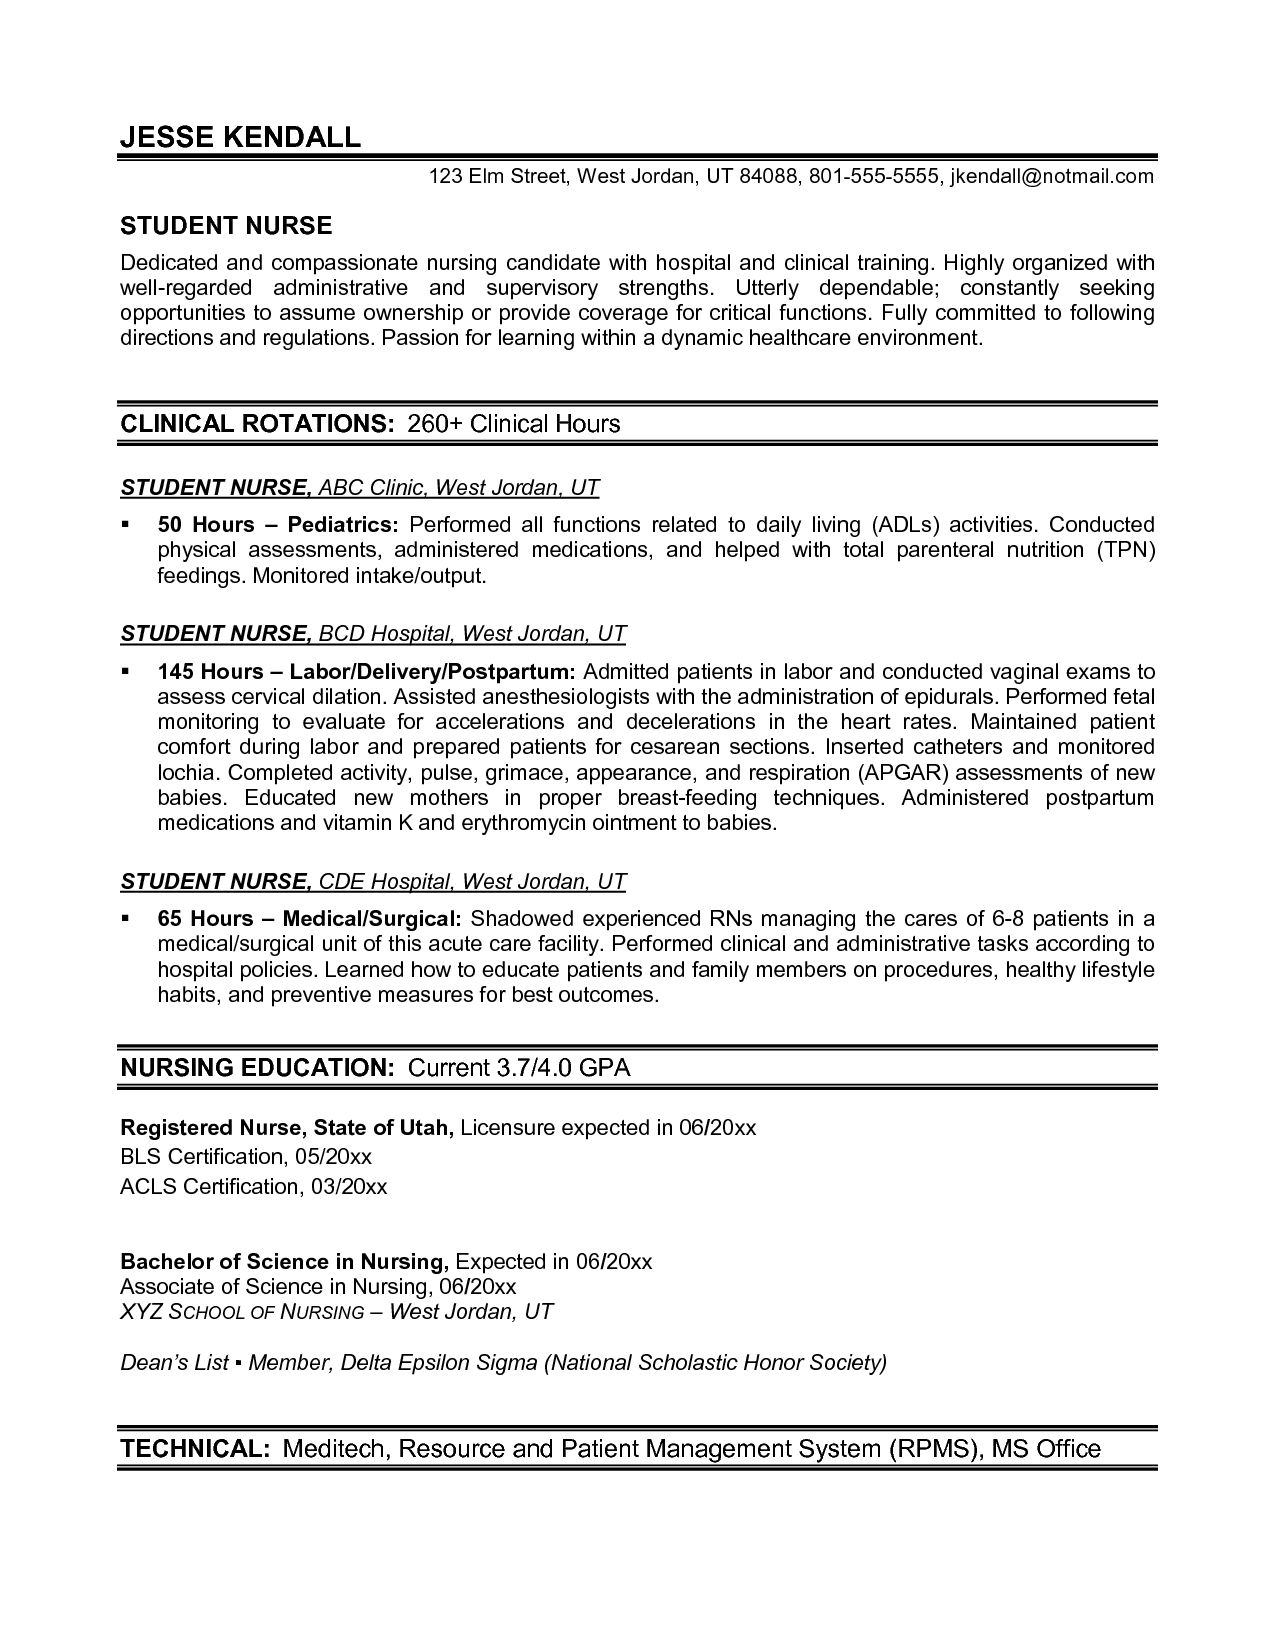 pin on nursing new grad rn resume objective statement armed security guard entry level Resume New Grad Rn Resume Objective Statement